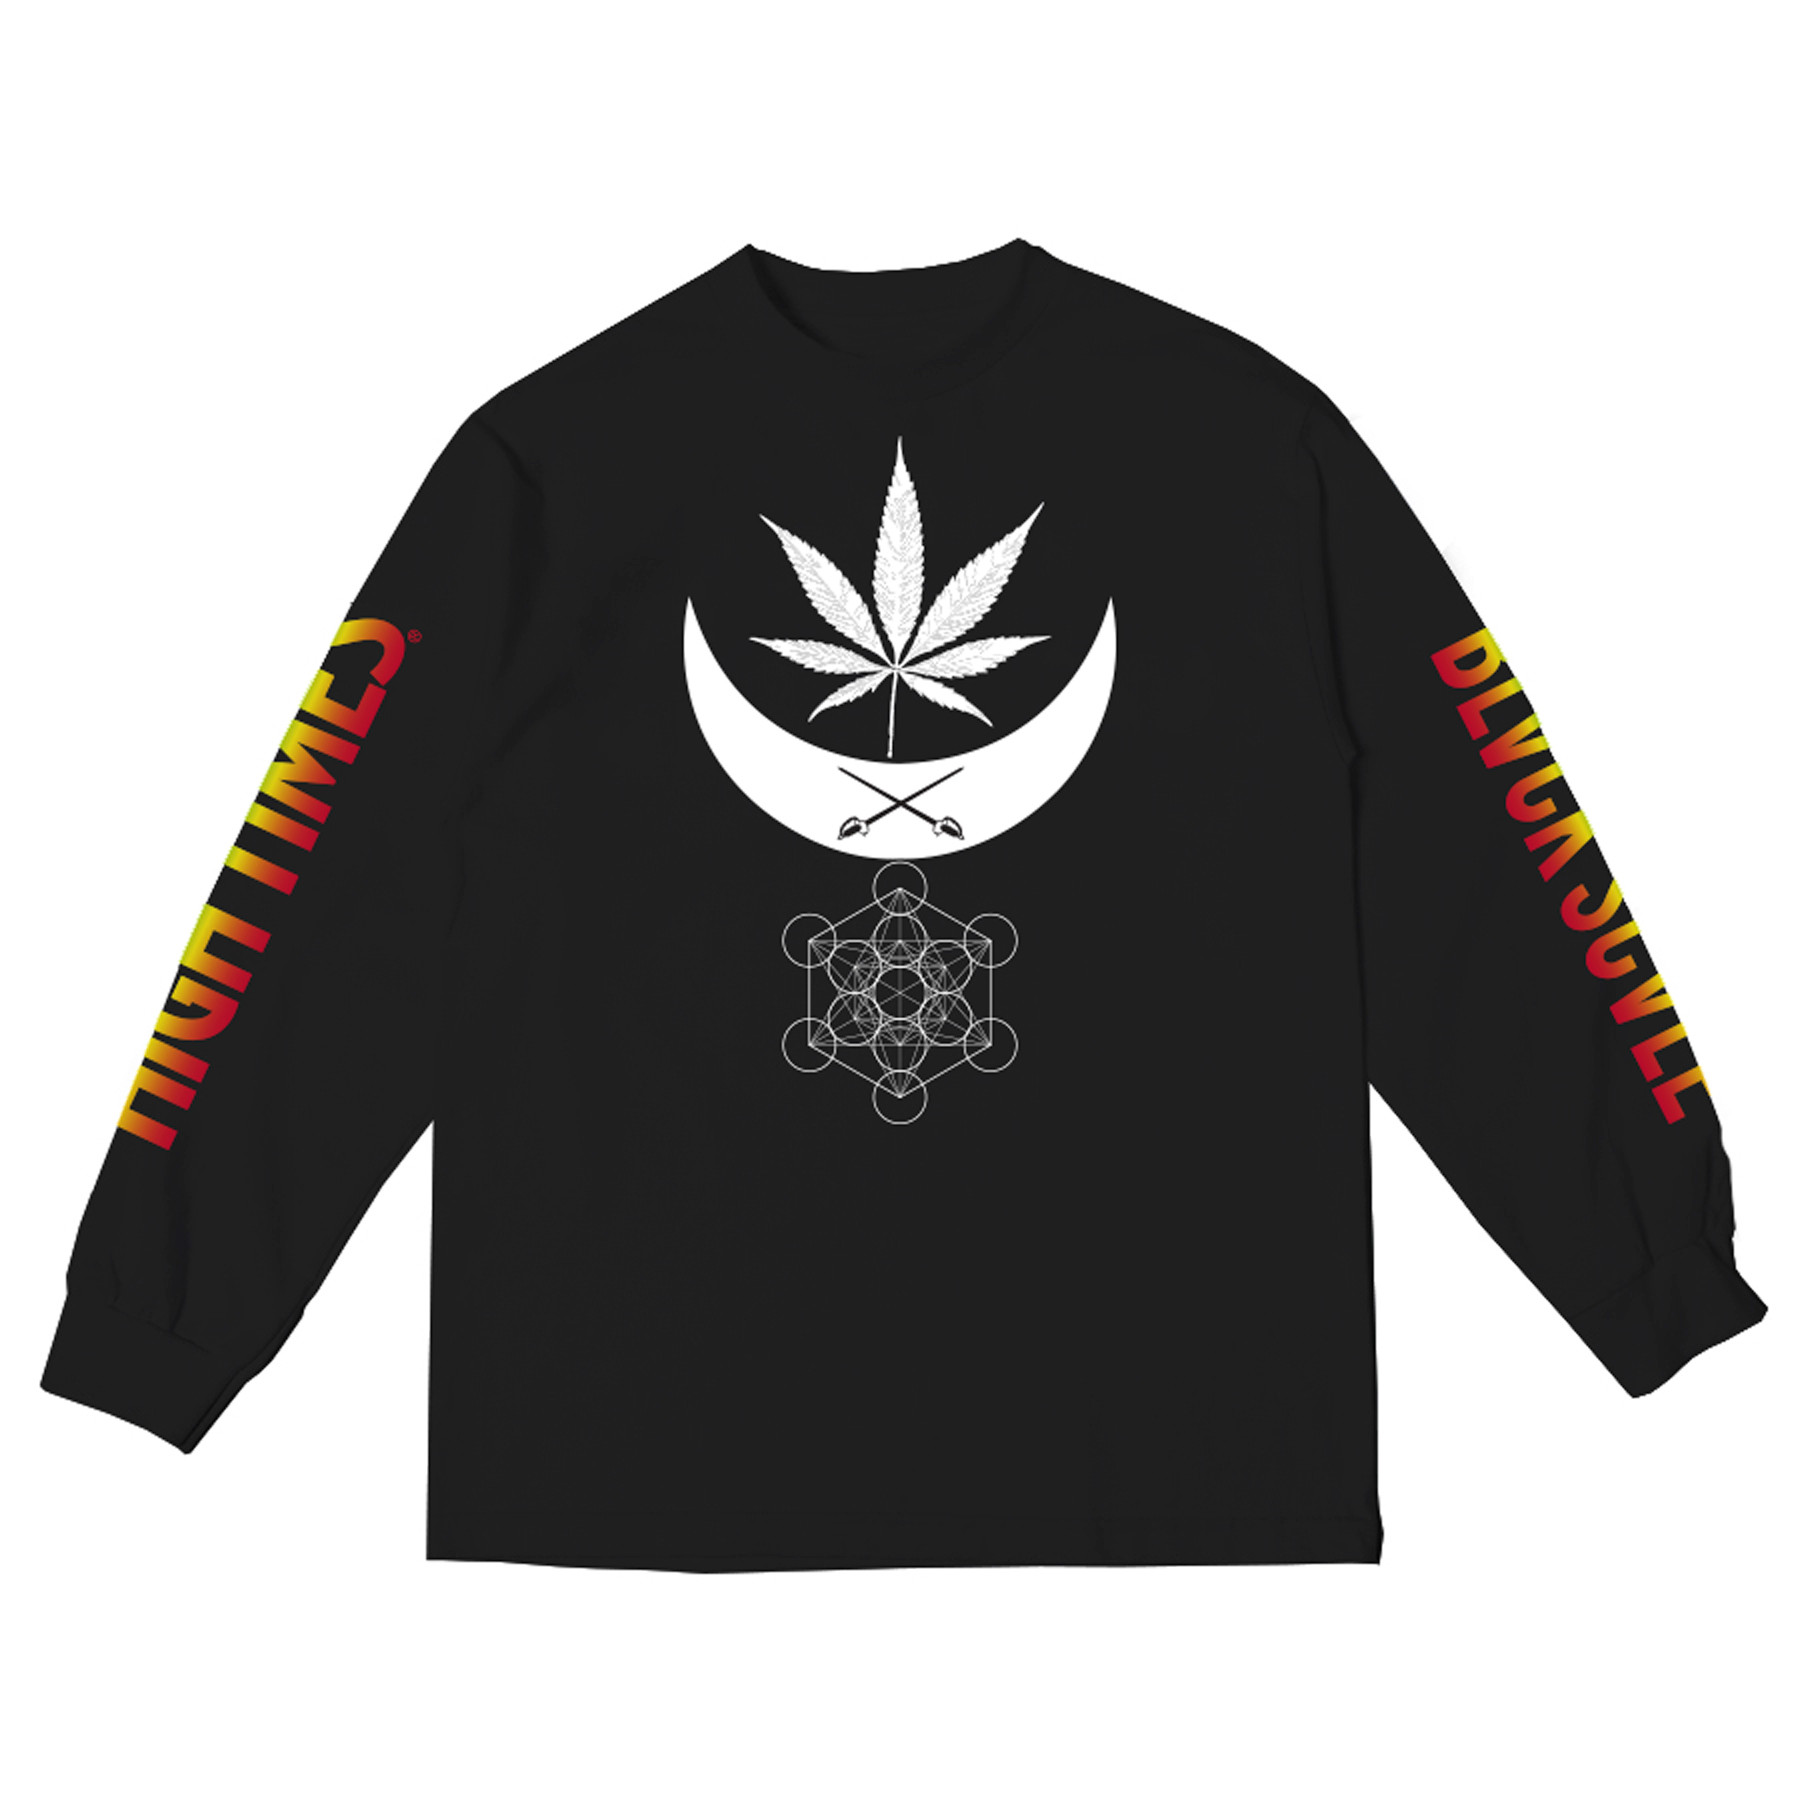 080b6d8d7fea HIGH TIMES x Black Scale Limited Edition 420 Capsule – Dazzling ...